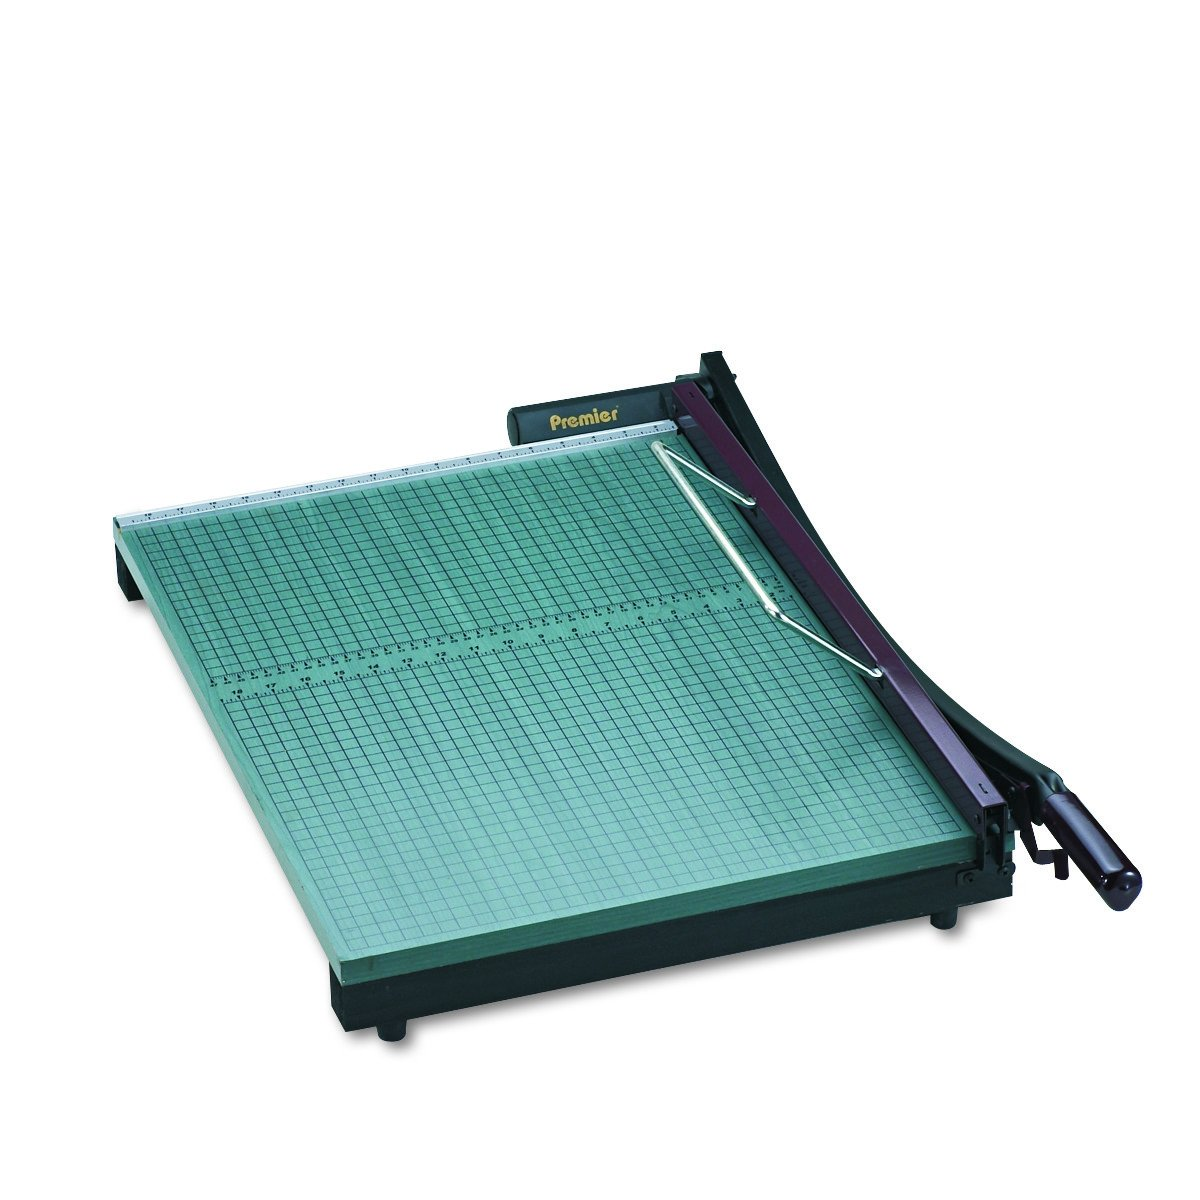 Martin Yale 724 Premier StackCut Heavy-Duty Paper Trimmer, Table Size 18-1/2'' x 24'', Permanent 1/2'' Grid and Dual English and Metric Rulers, Ergonomic Soft-grip Handle by Martin Yale